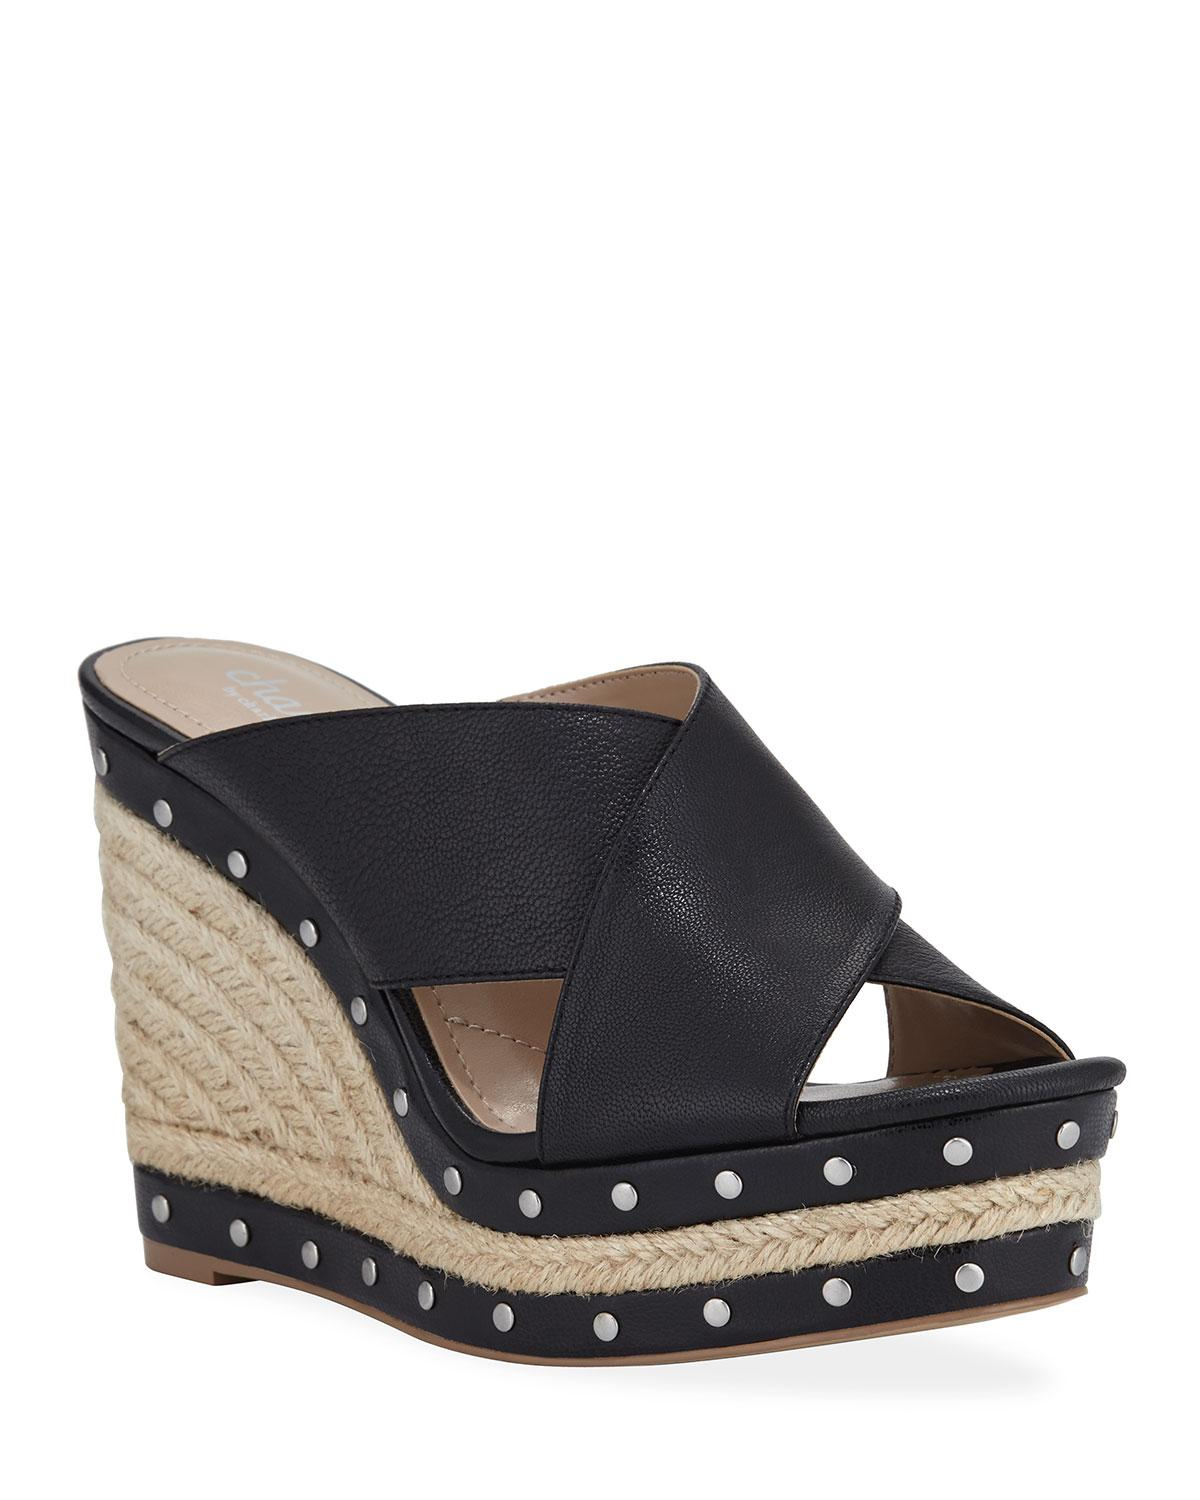 5ab0326b7d99 Charles David. Women s Black Leilani Studded Espadrille Wedge Sandals